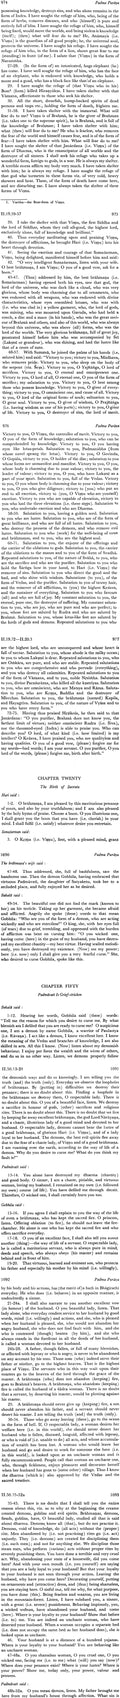 THE PADMA PURANA (Ten Volumes)